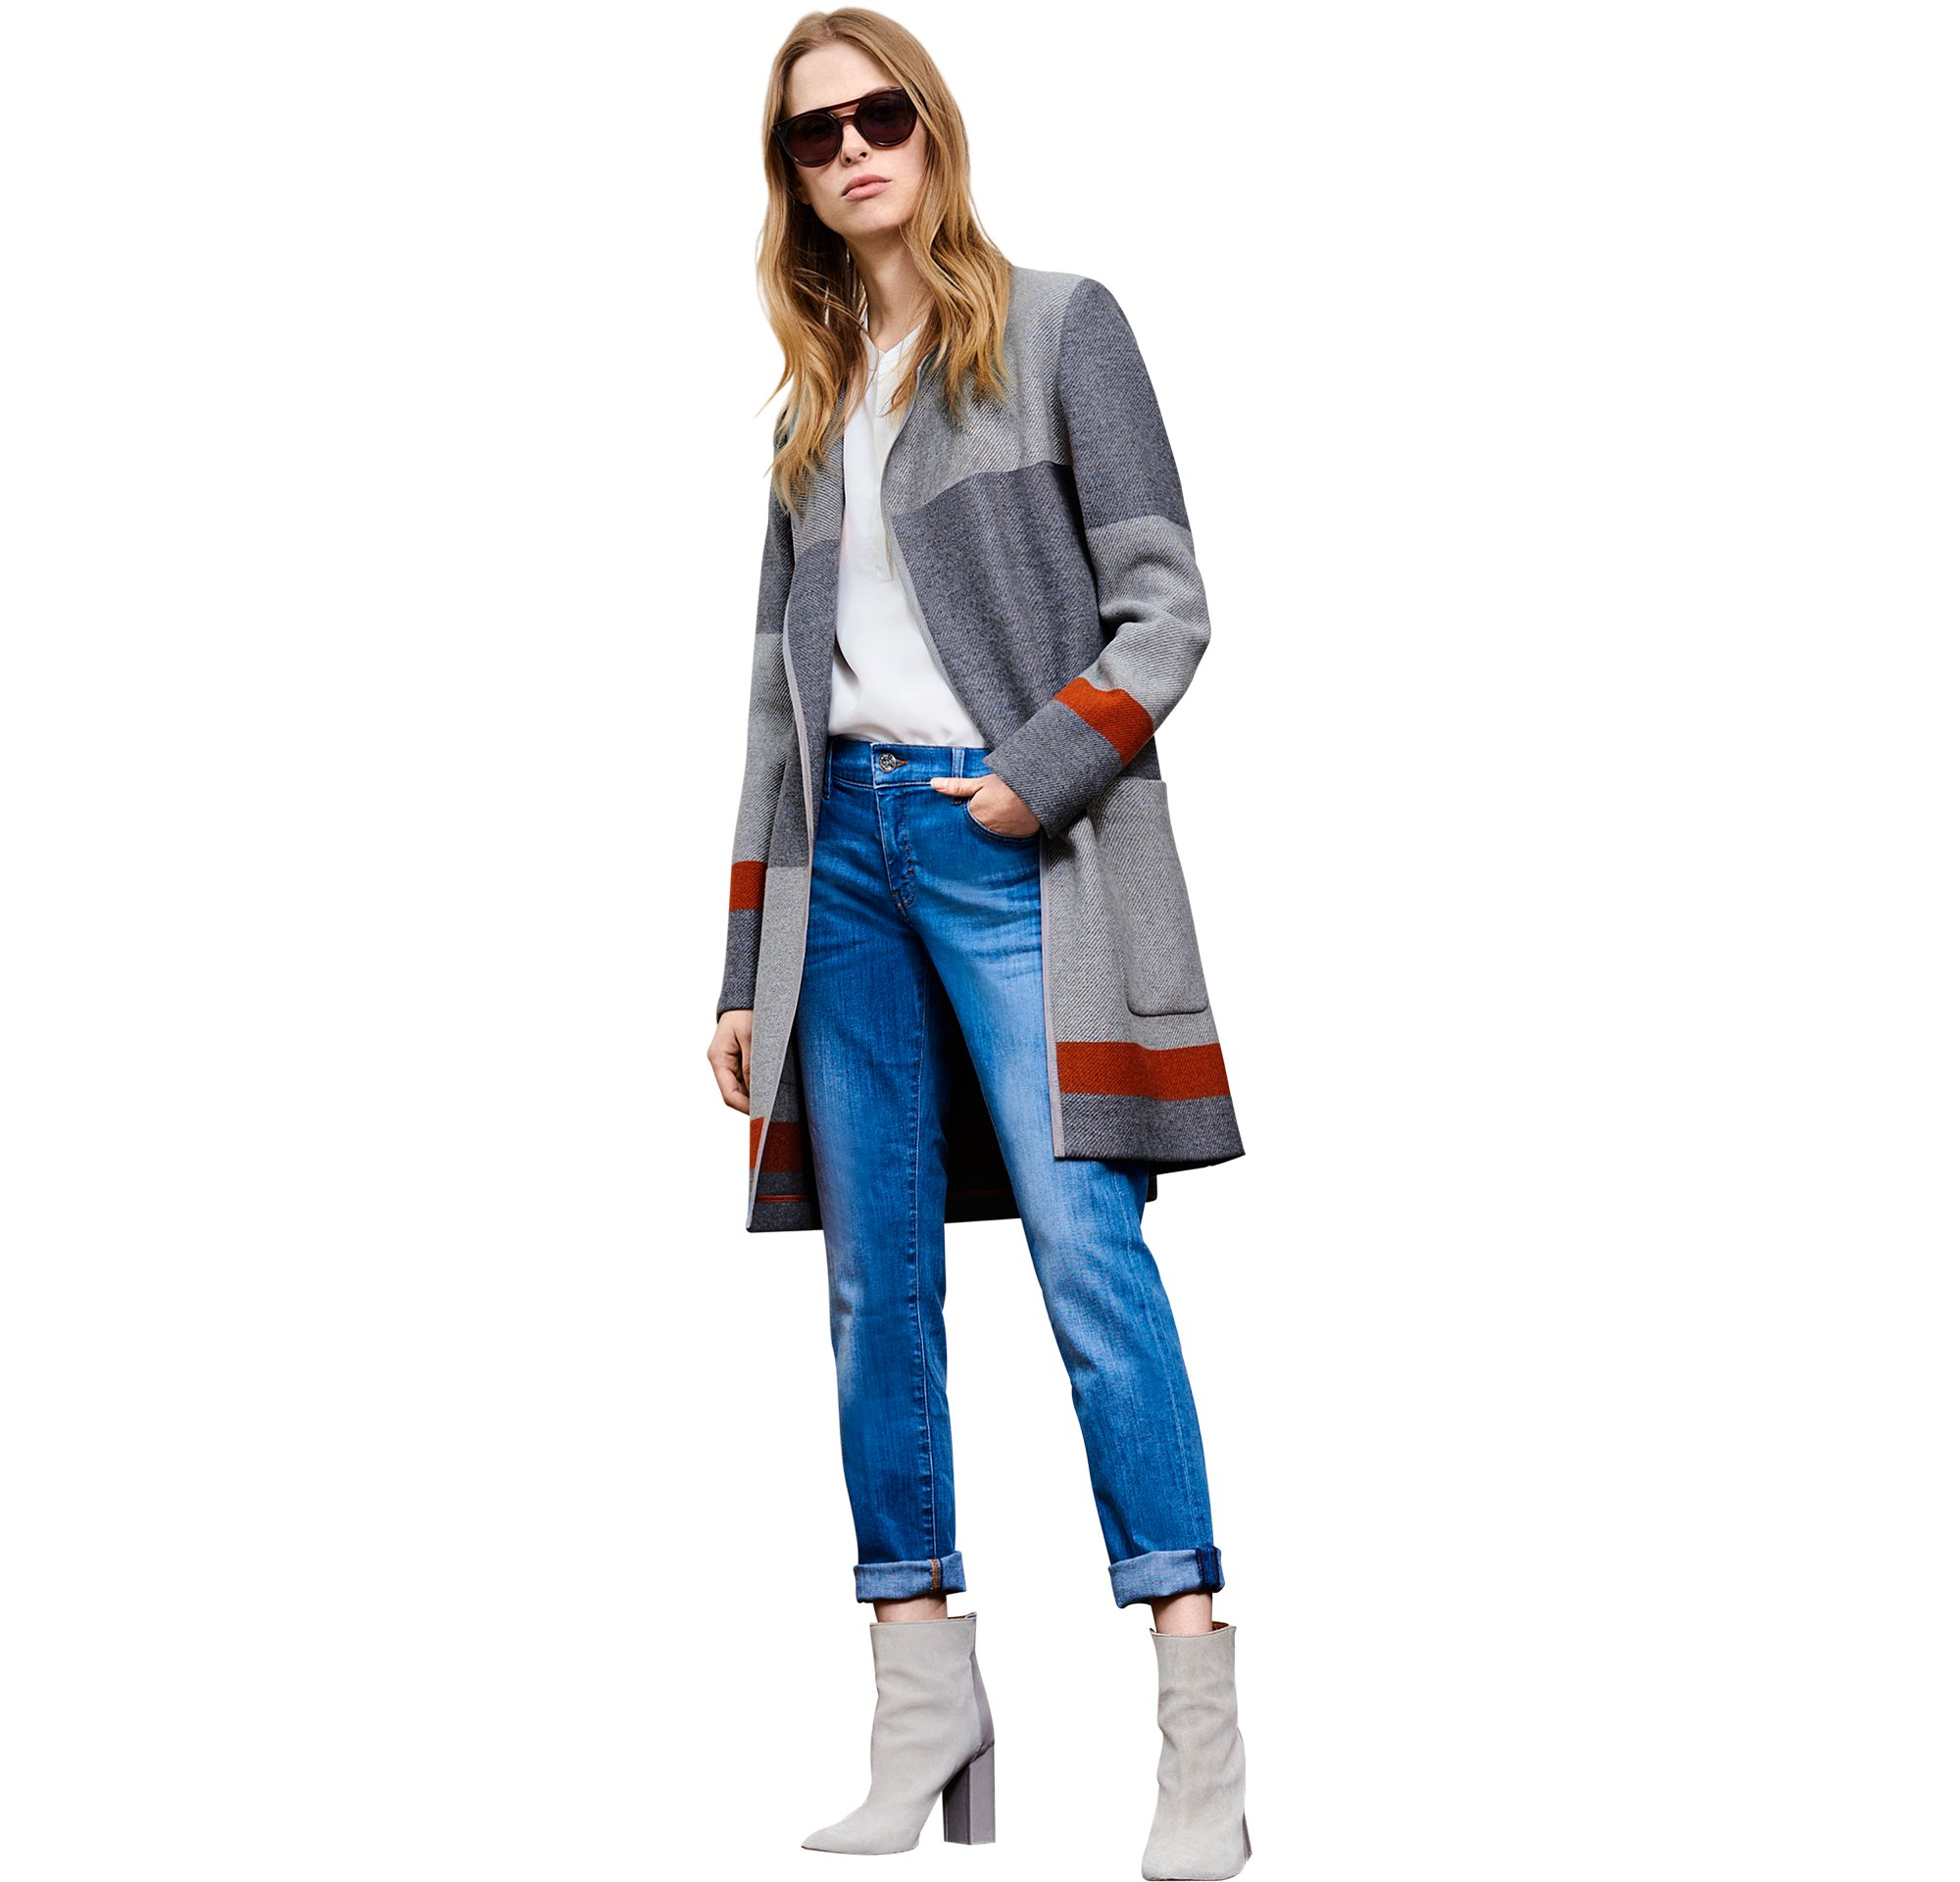 Manteau, chemisier, jeans, bottines BOSS Orange Femme